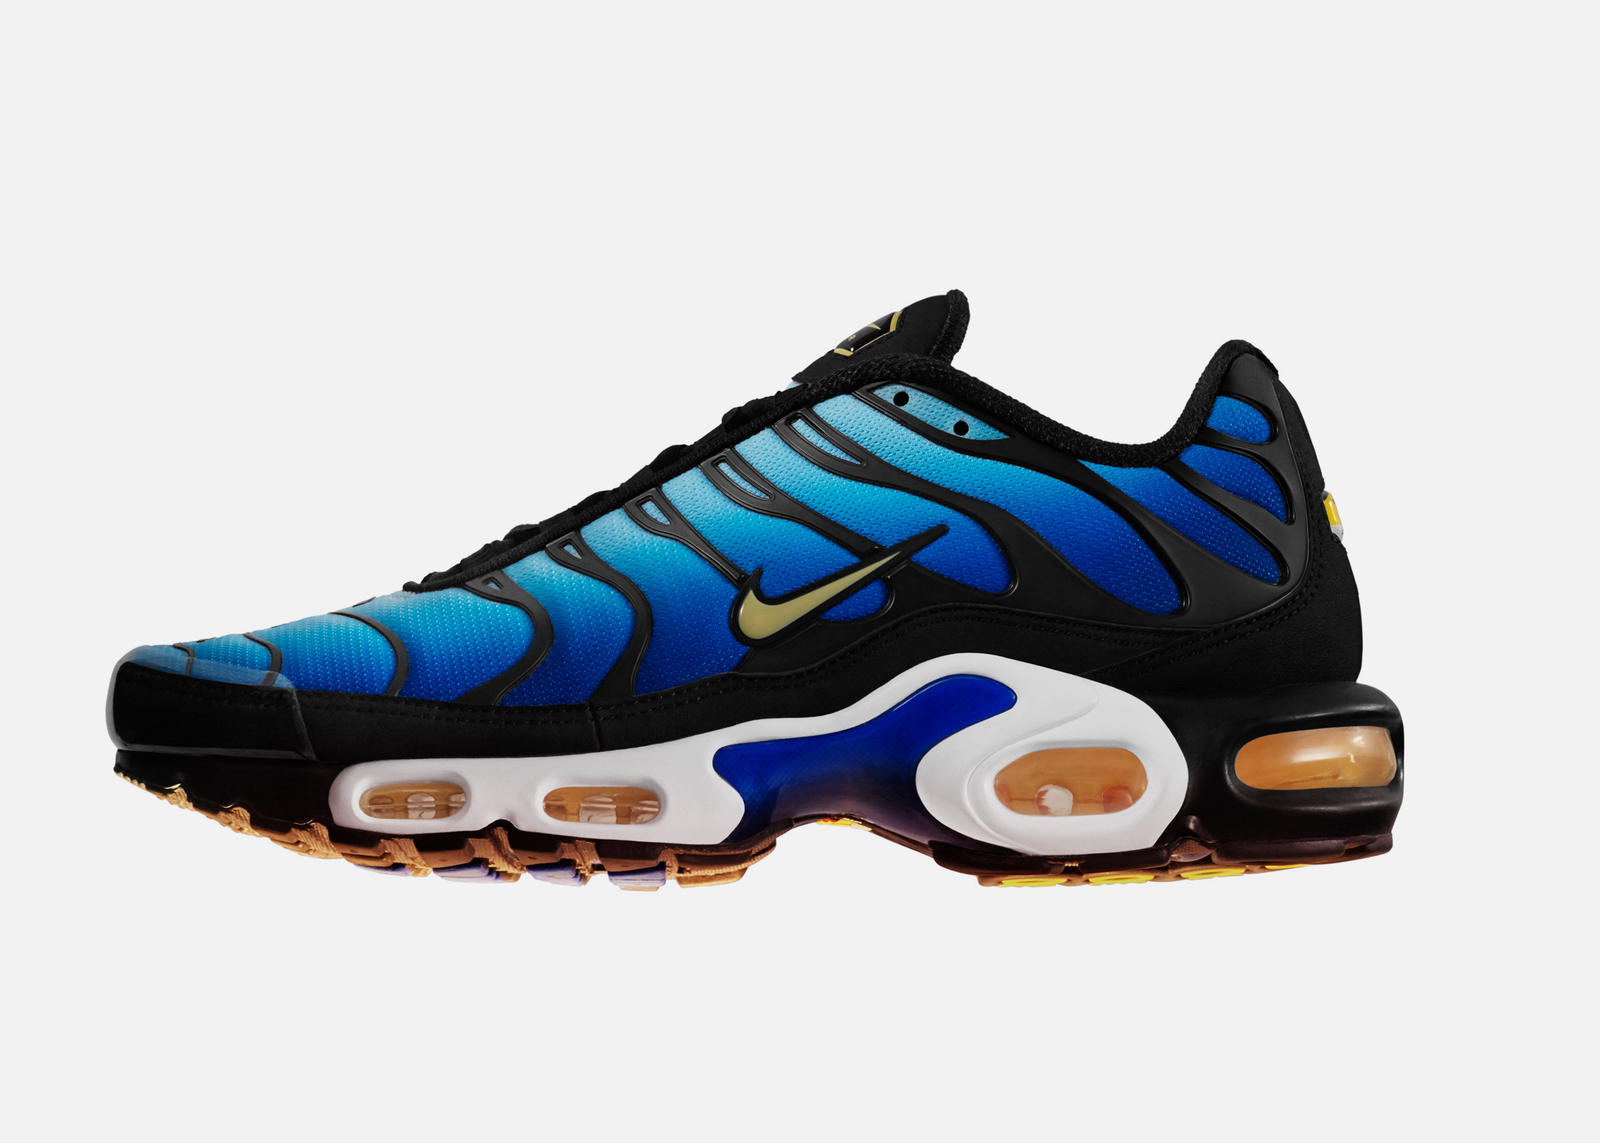 online retailer 3642c d9865 The Untold Story of the Nike Air Max Plus 20